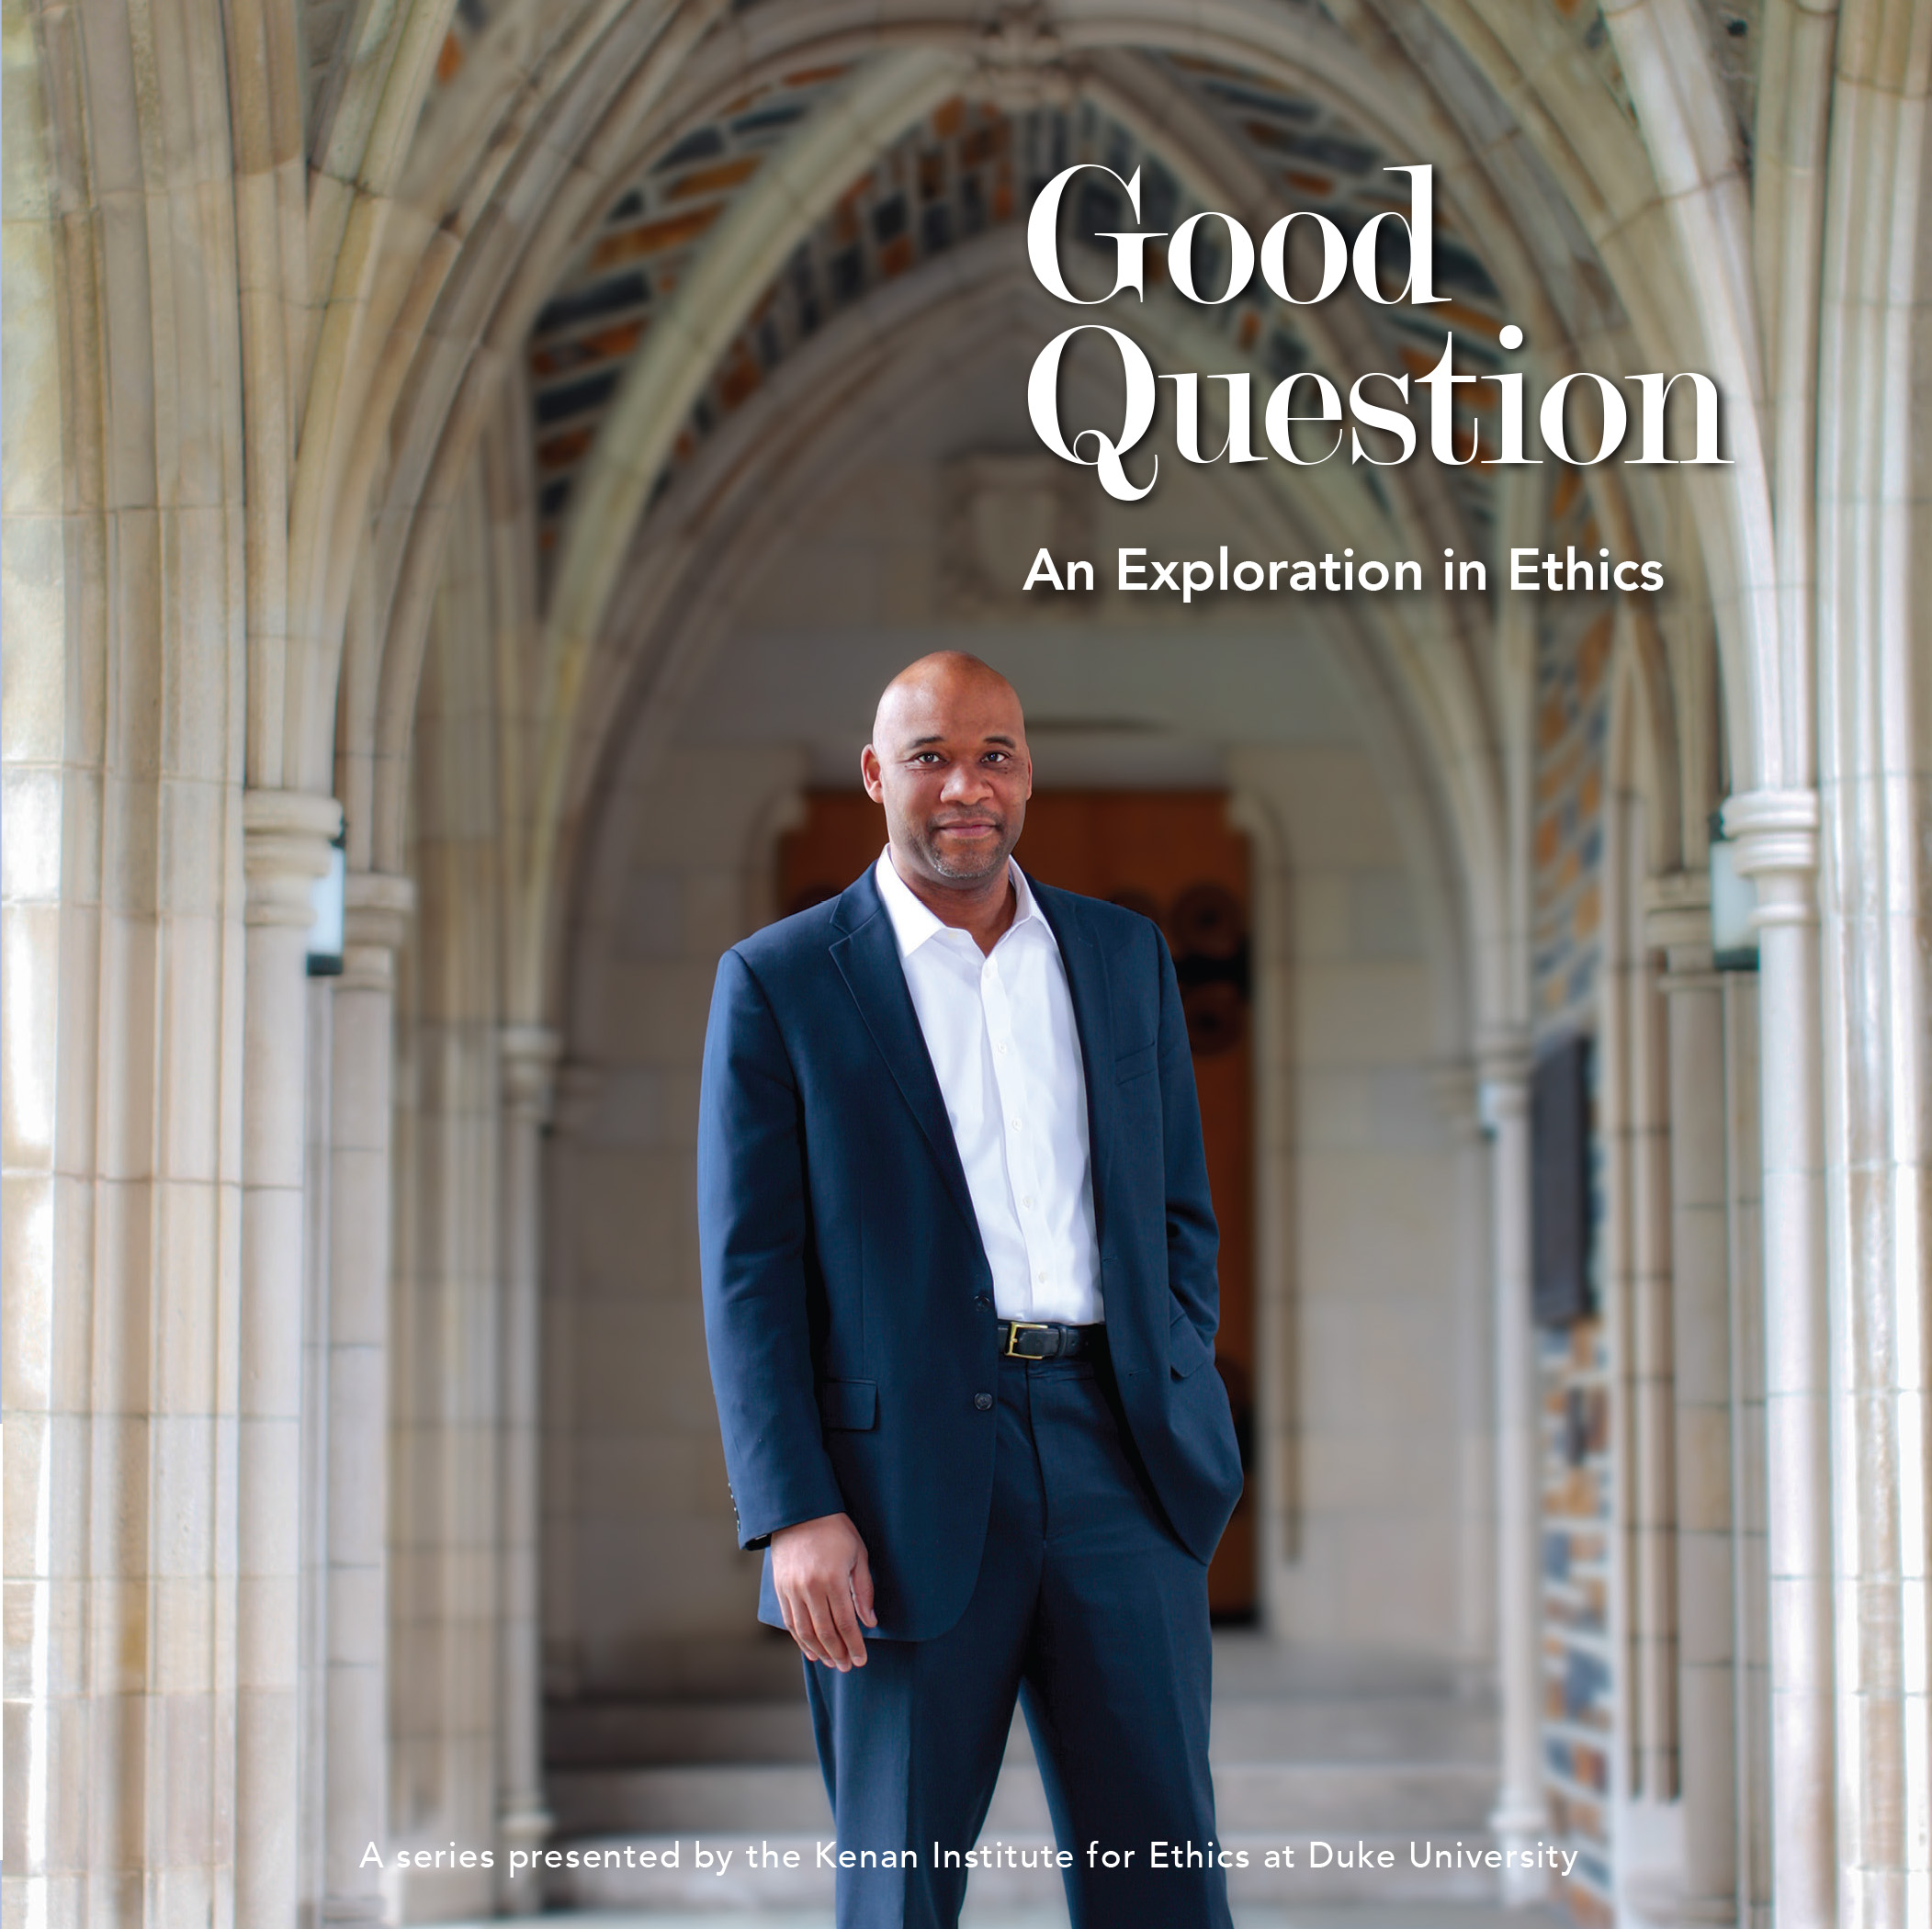 Good Question Patrick Smith (cover image)